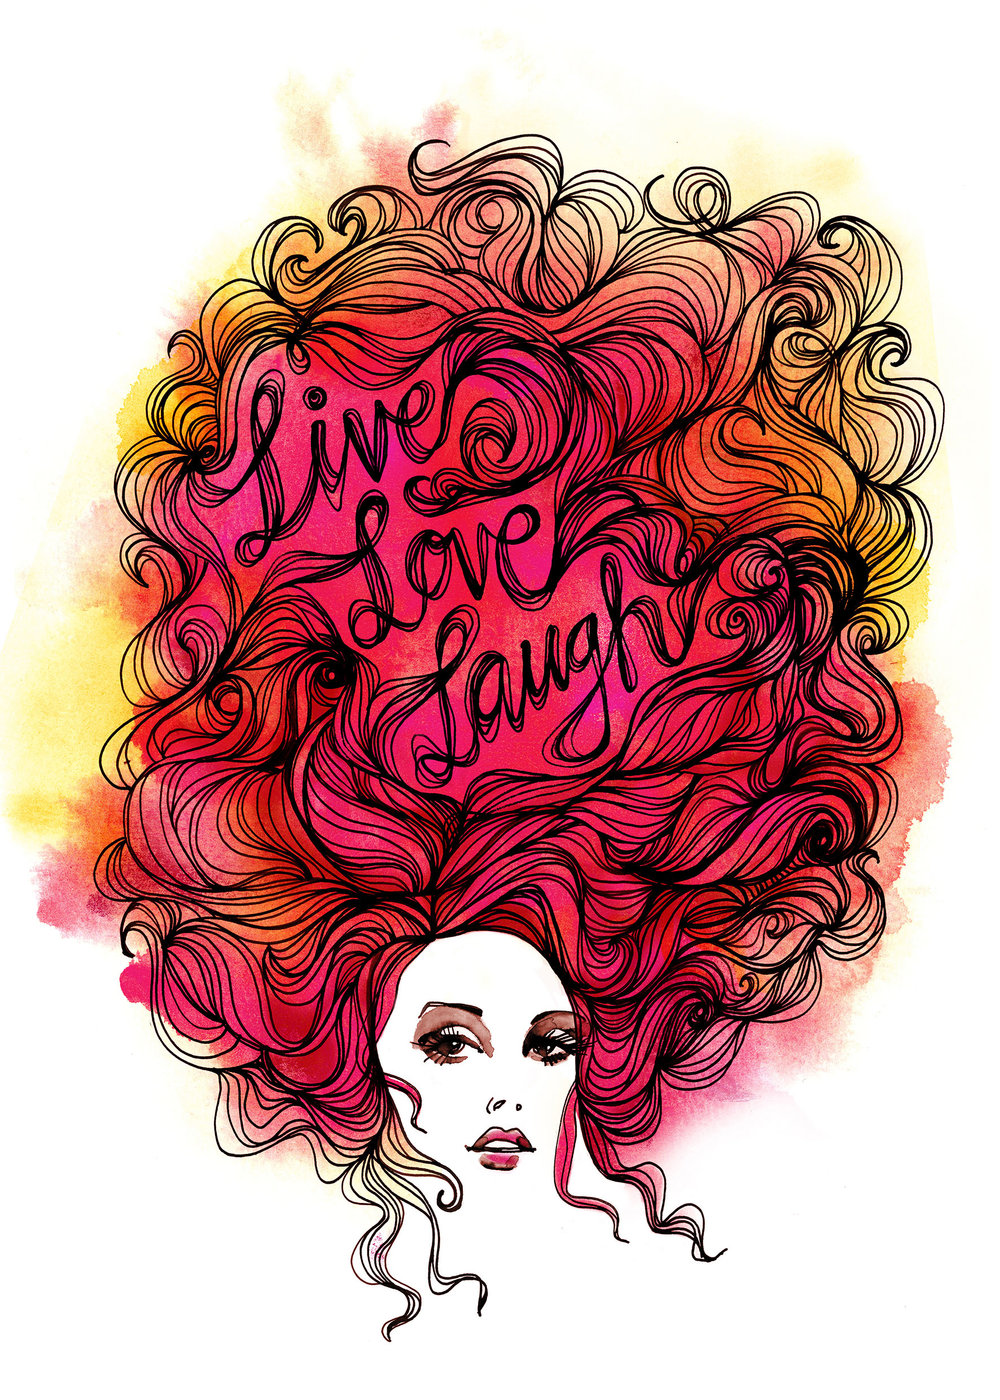 Live, Love, Laugh / Own Project